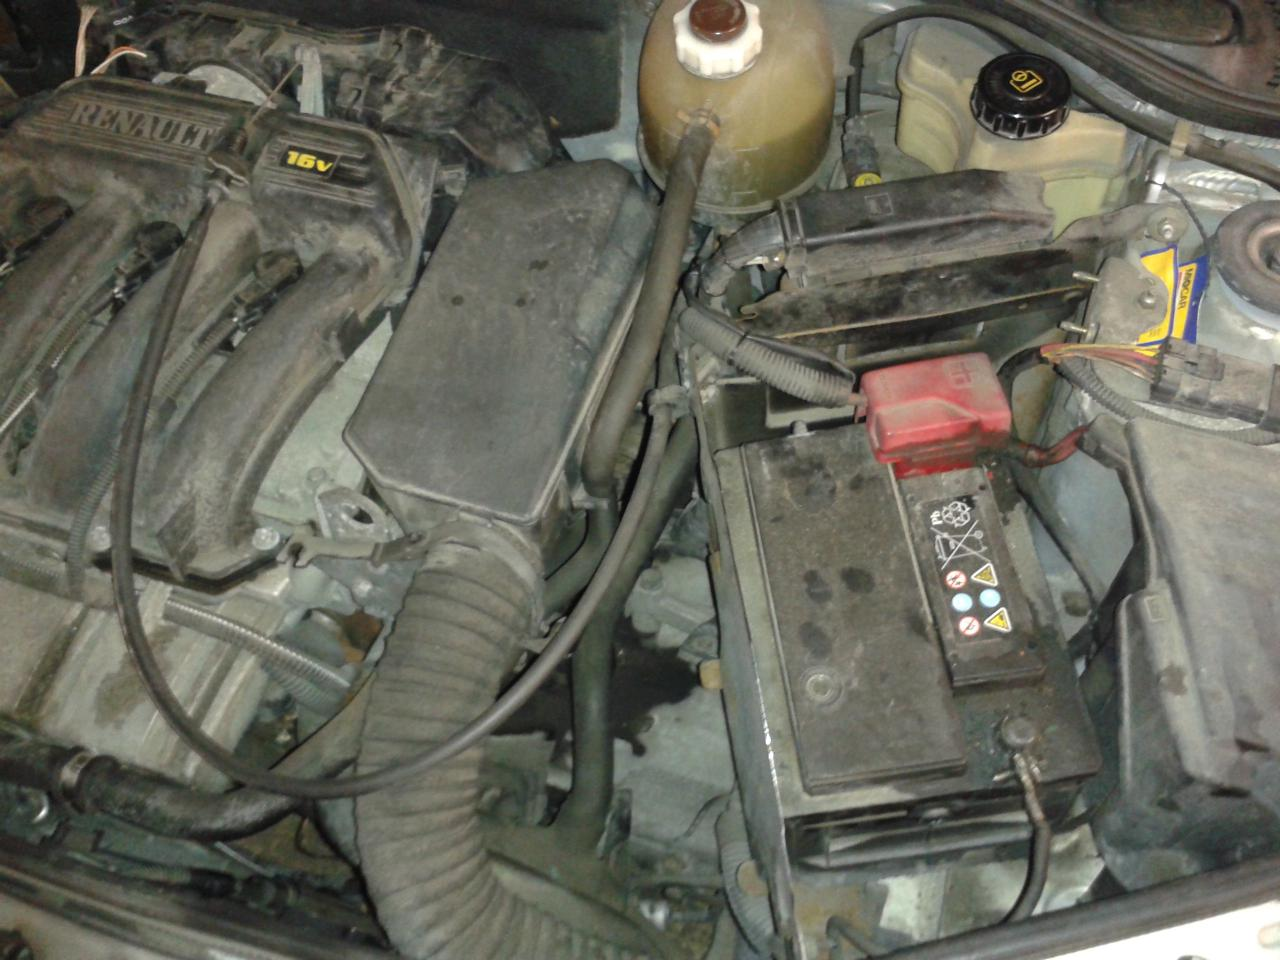 1998 2012 renault clio ii battery replacement. Black Bedroom Furniture Sets. Home Design Ideas